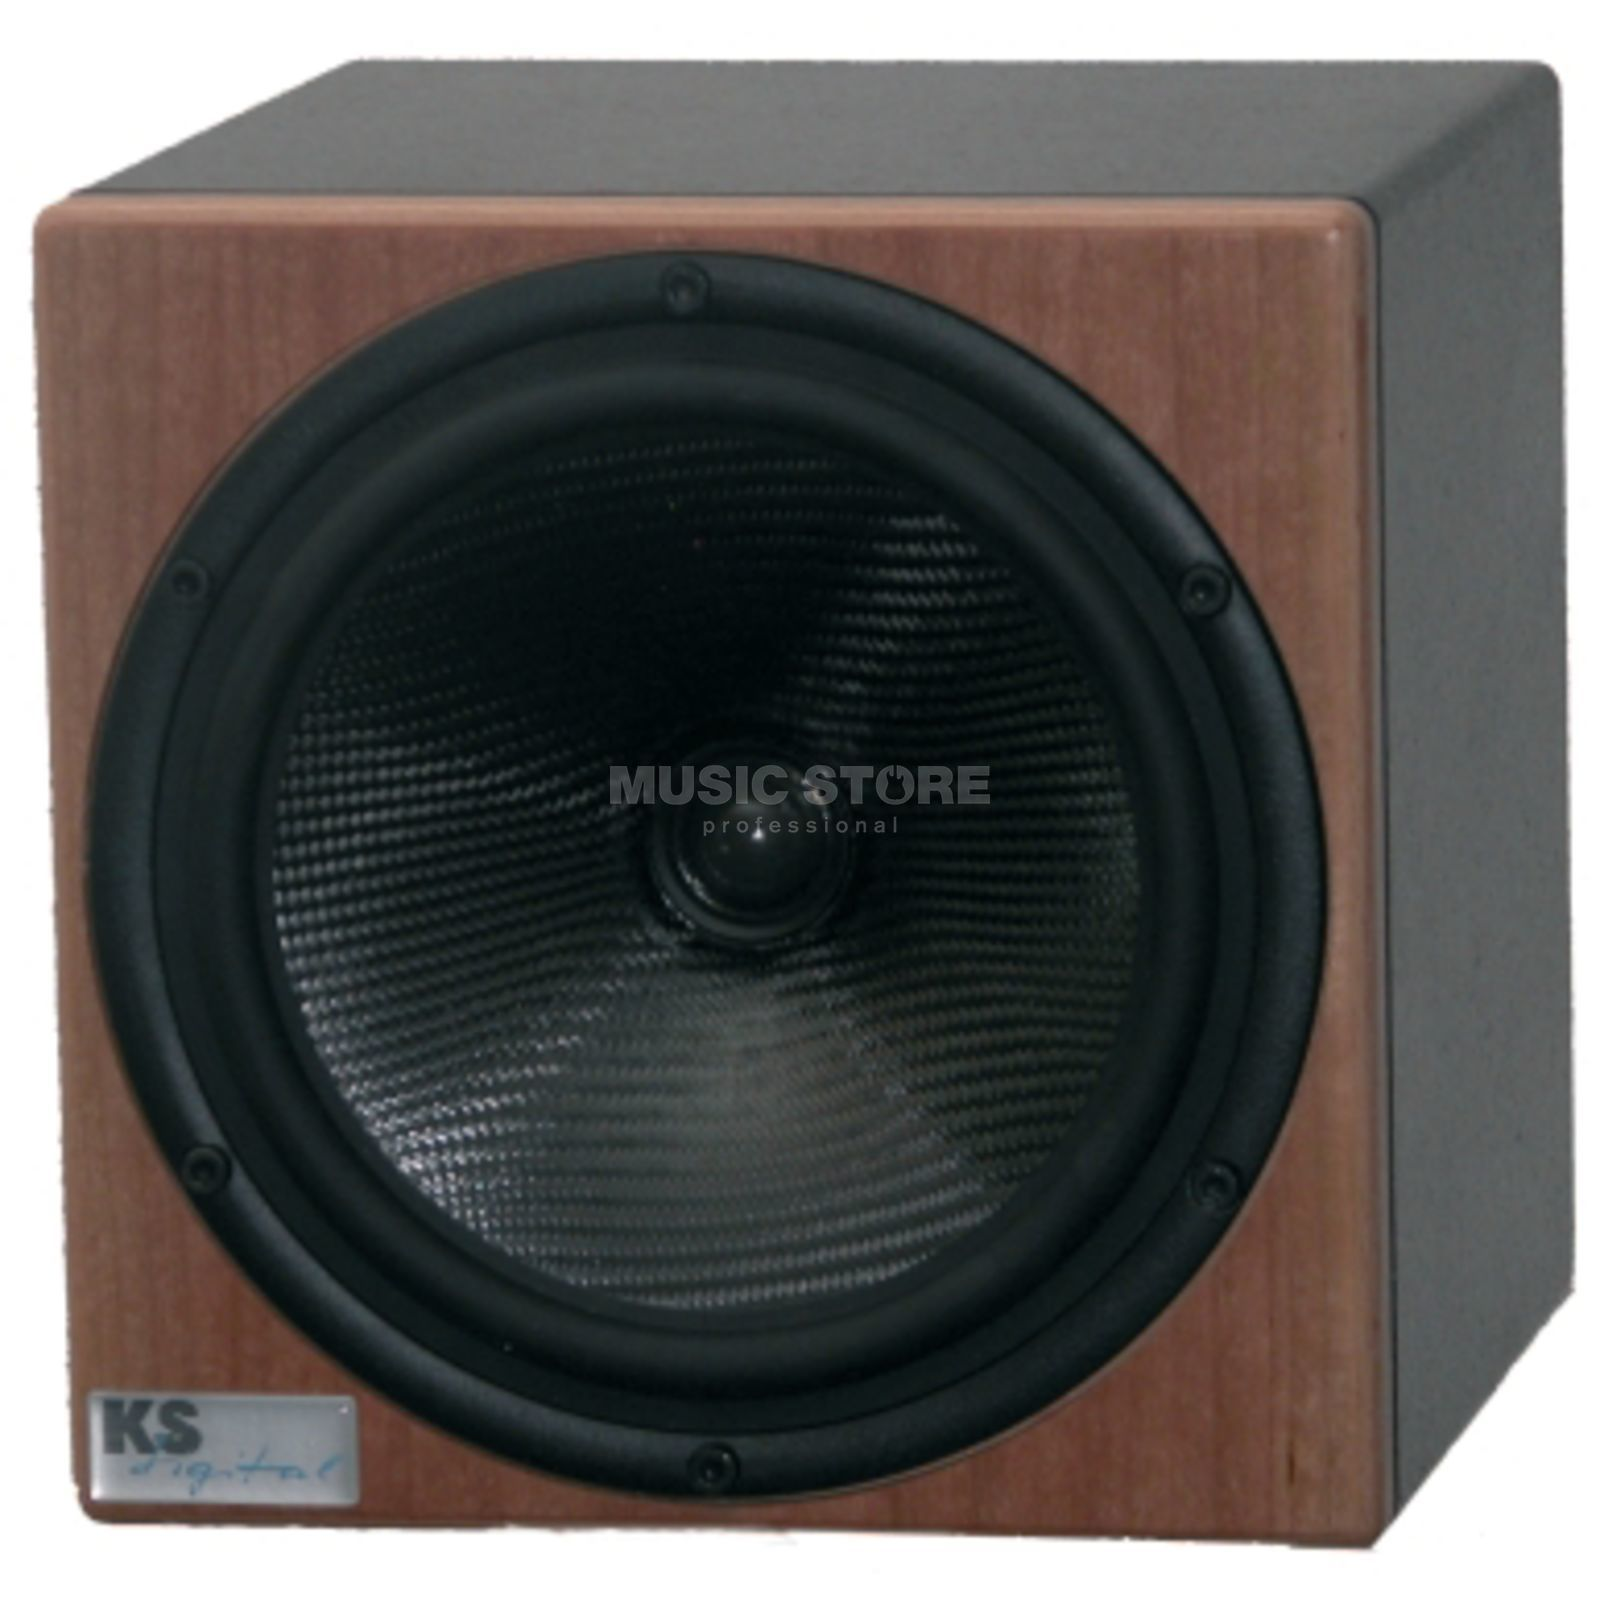 "KS-Digital C-8 Coax - Studio Monitor 2 Way Active 8"" Produktbillede"